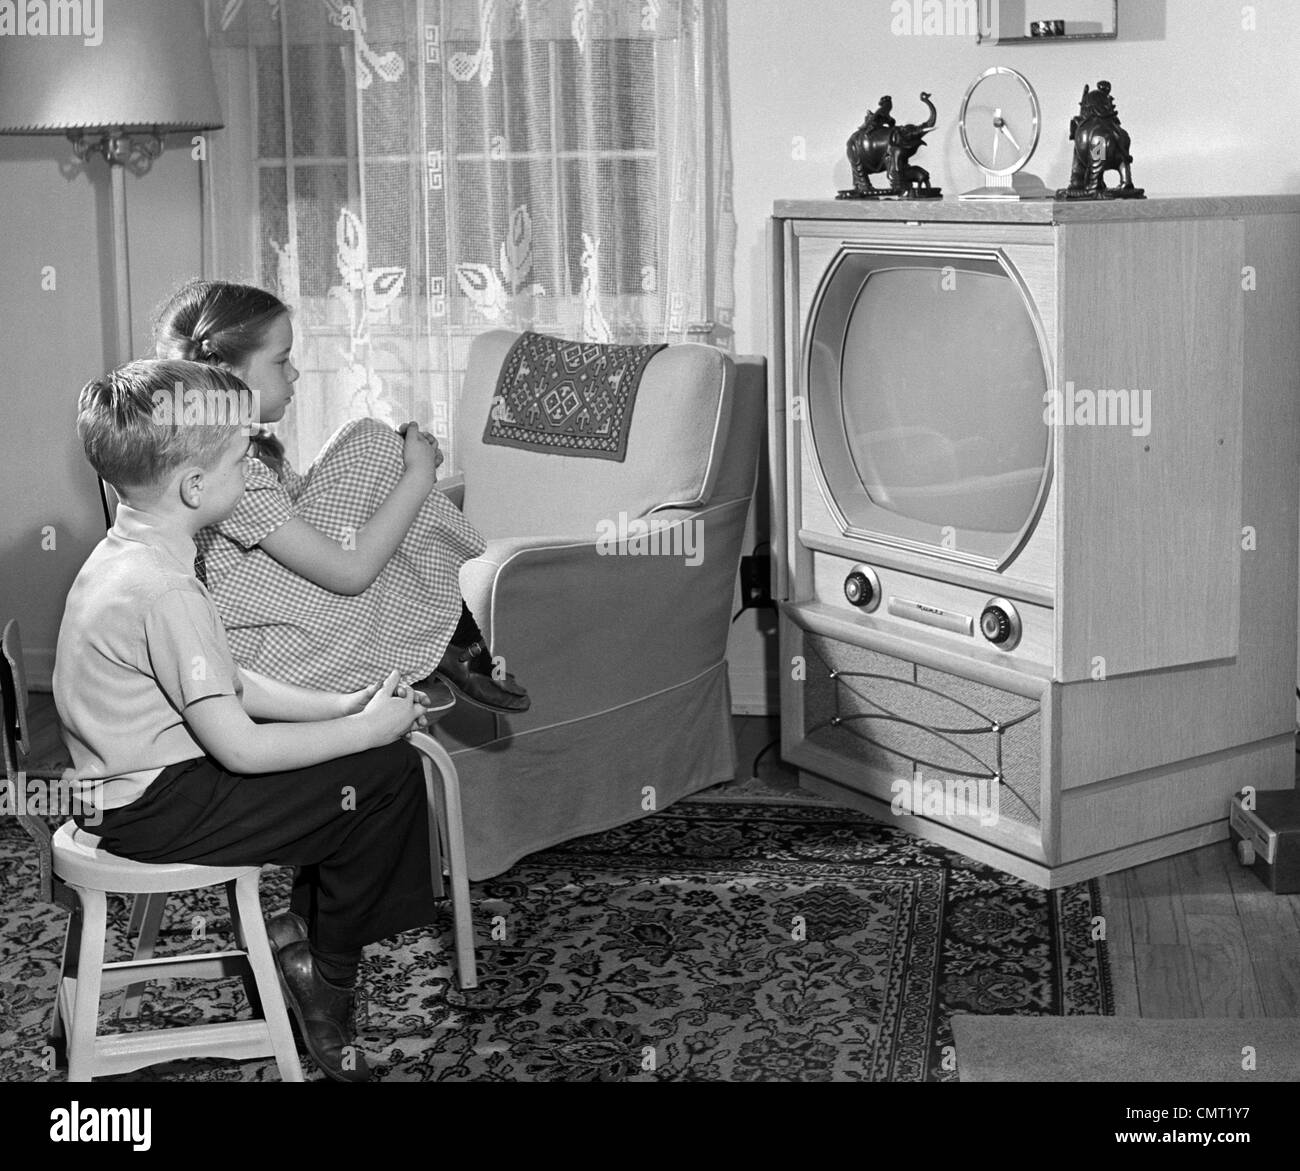 Living Room 1950s 1950s boy and girl watching tv in living room stock photo, royalty